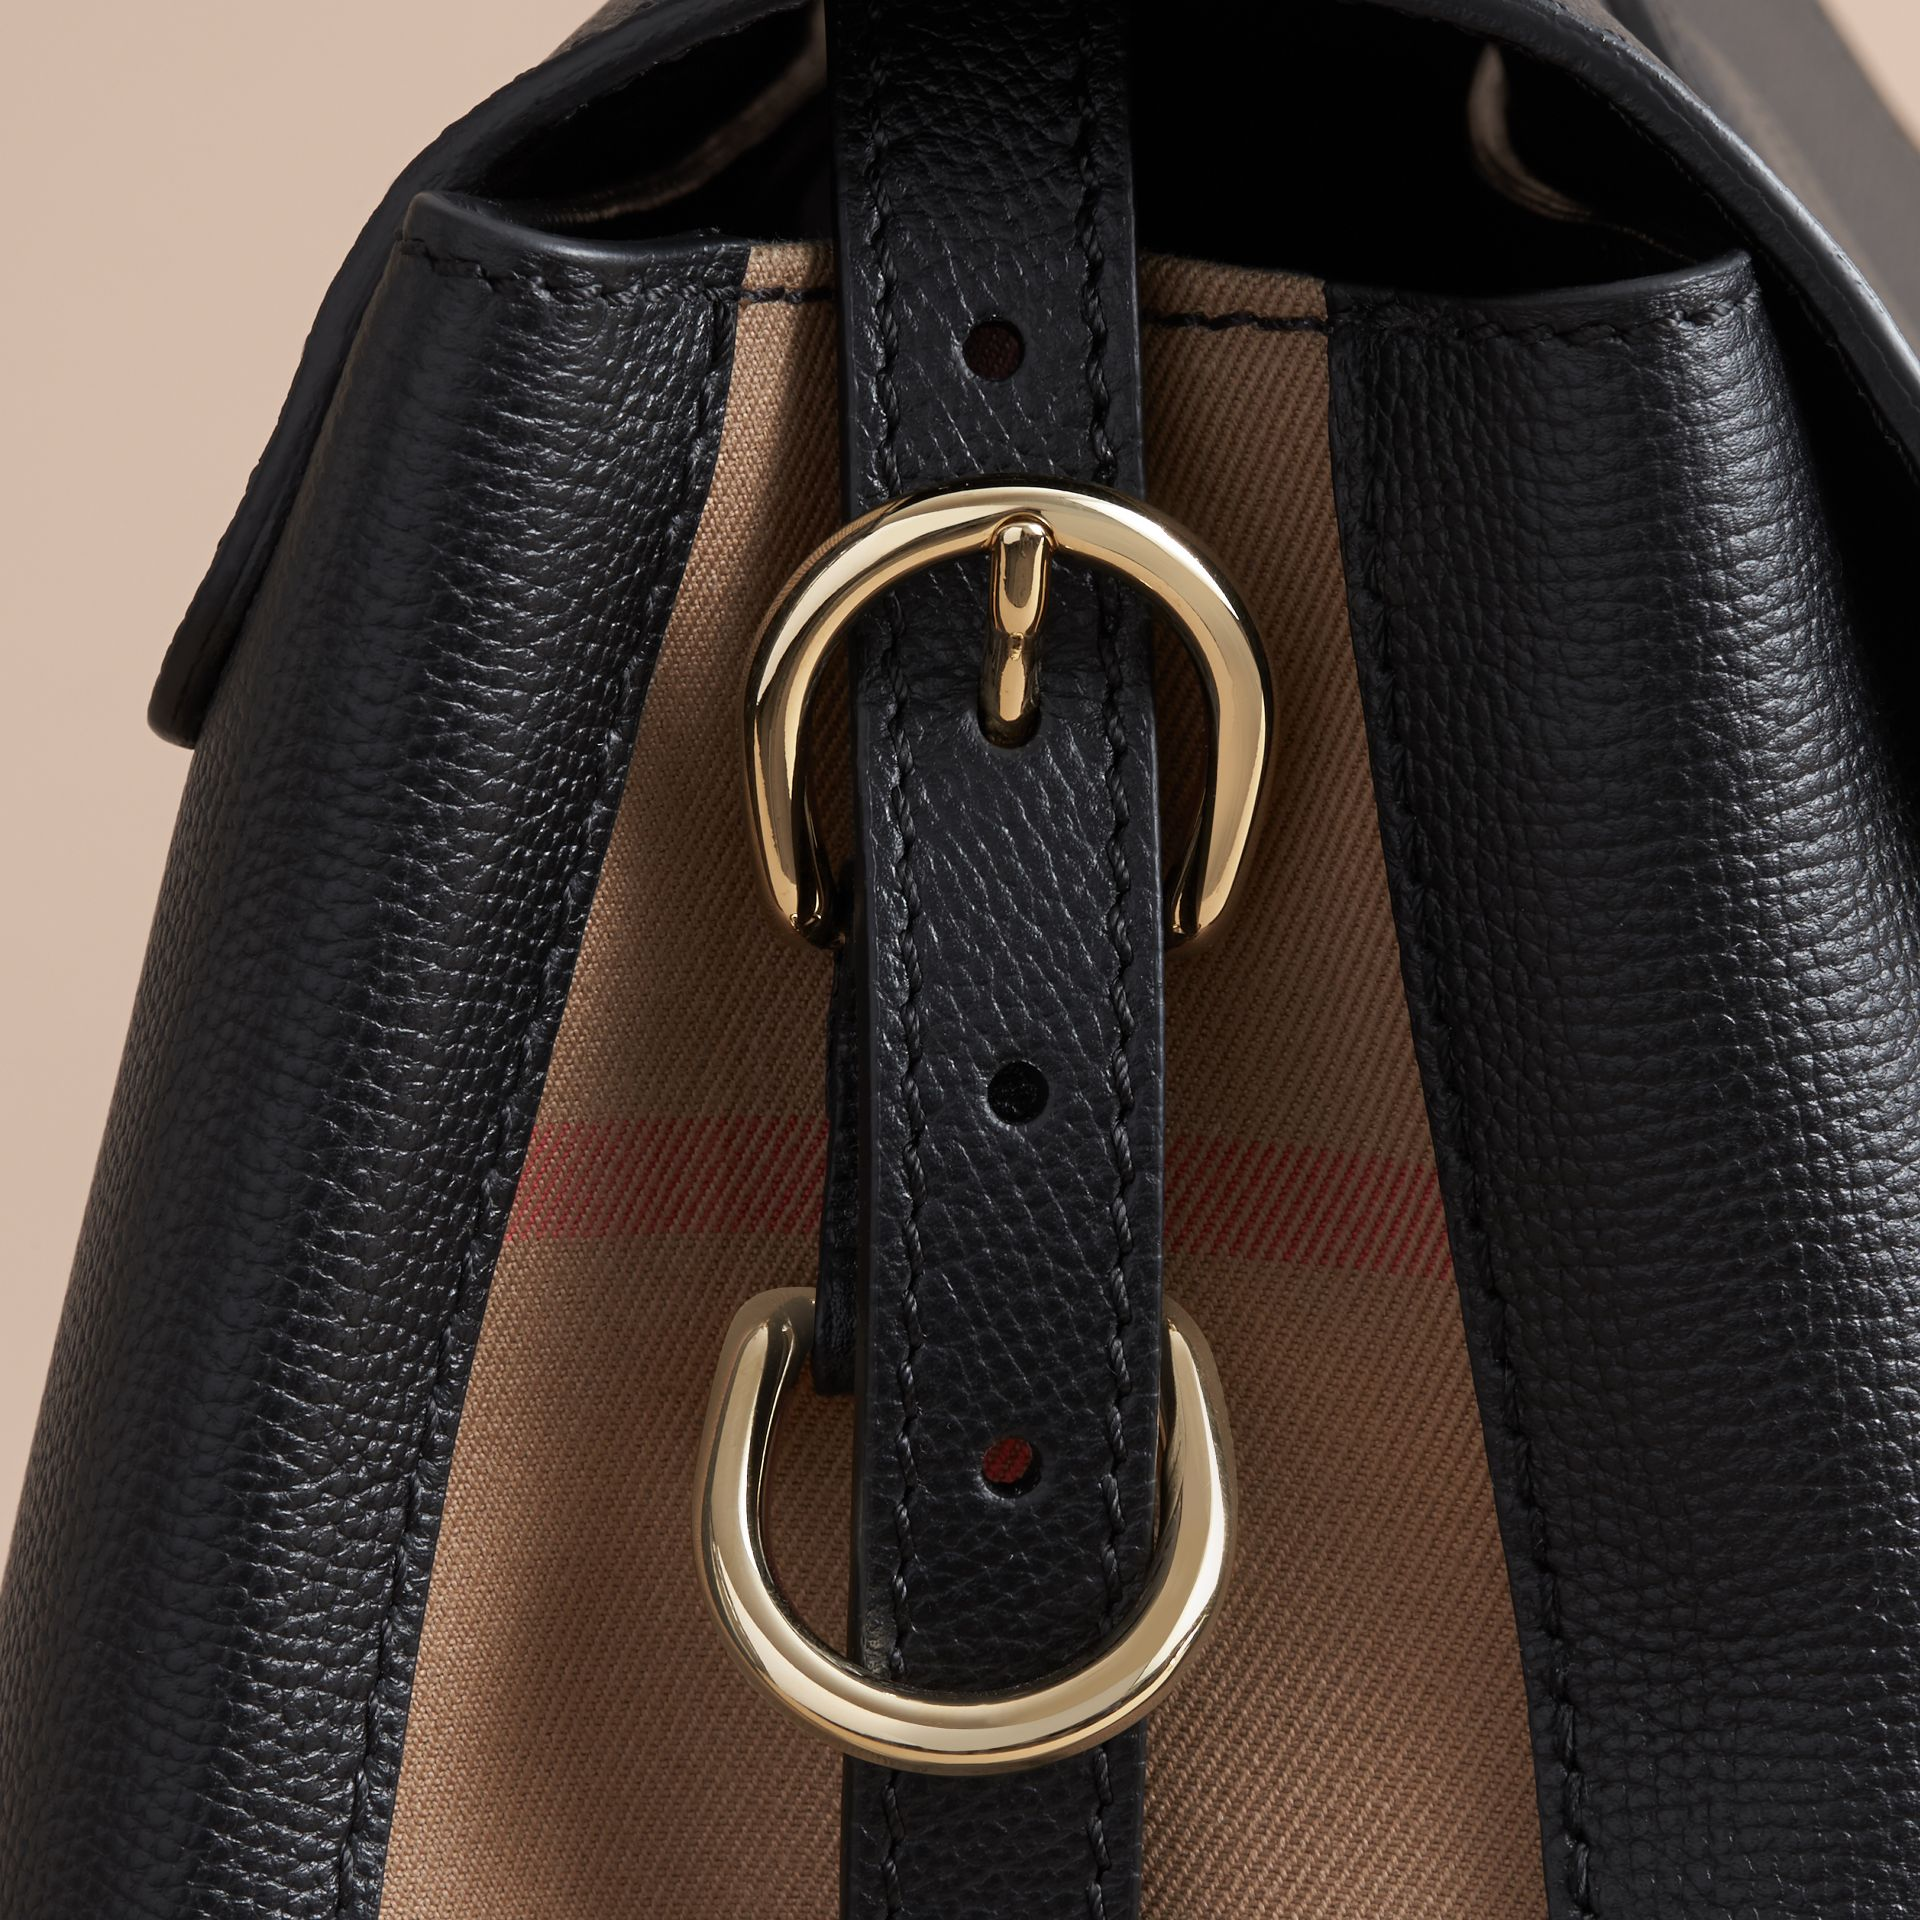 Medium Grainy Leather and House Check Tote Bag in Black - Women | Burberry United Kingdom - gallery image 7